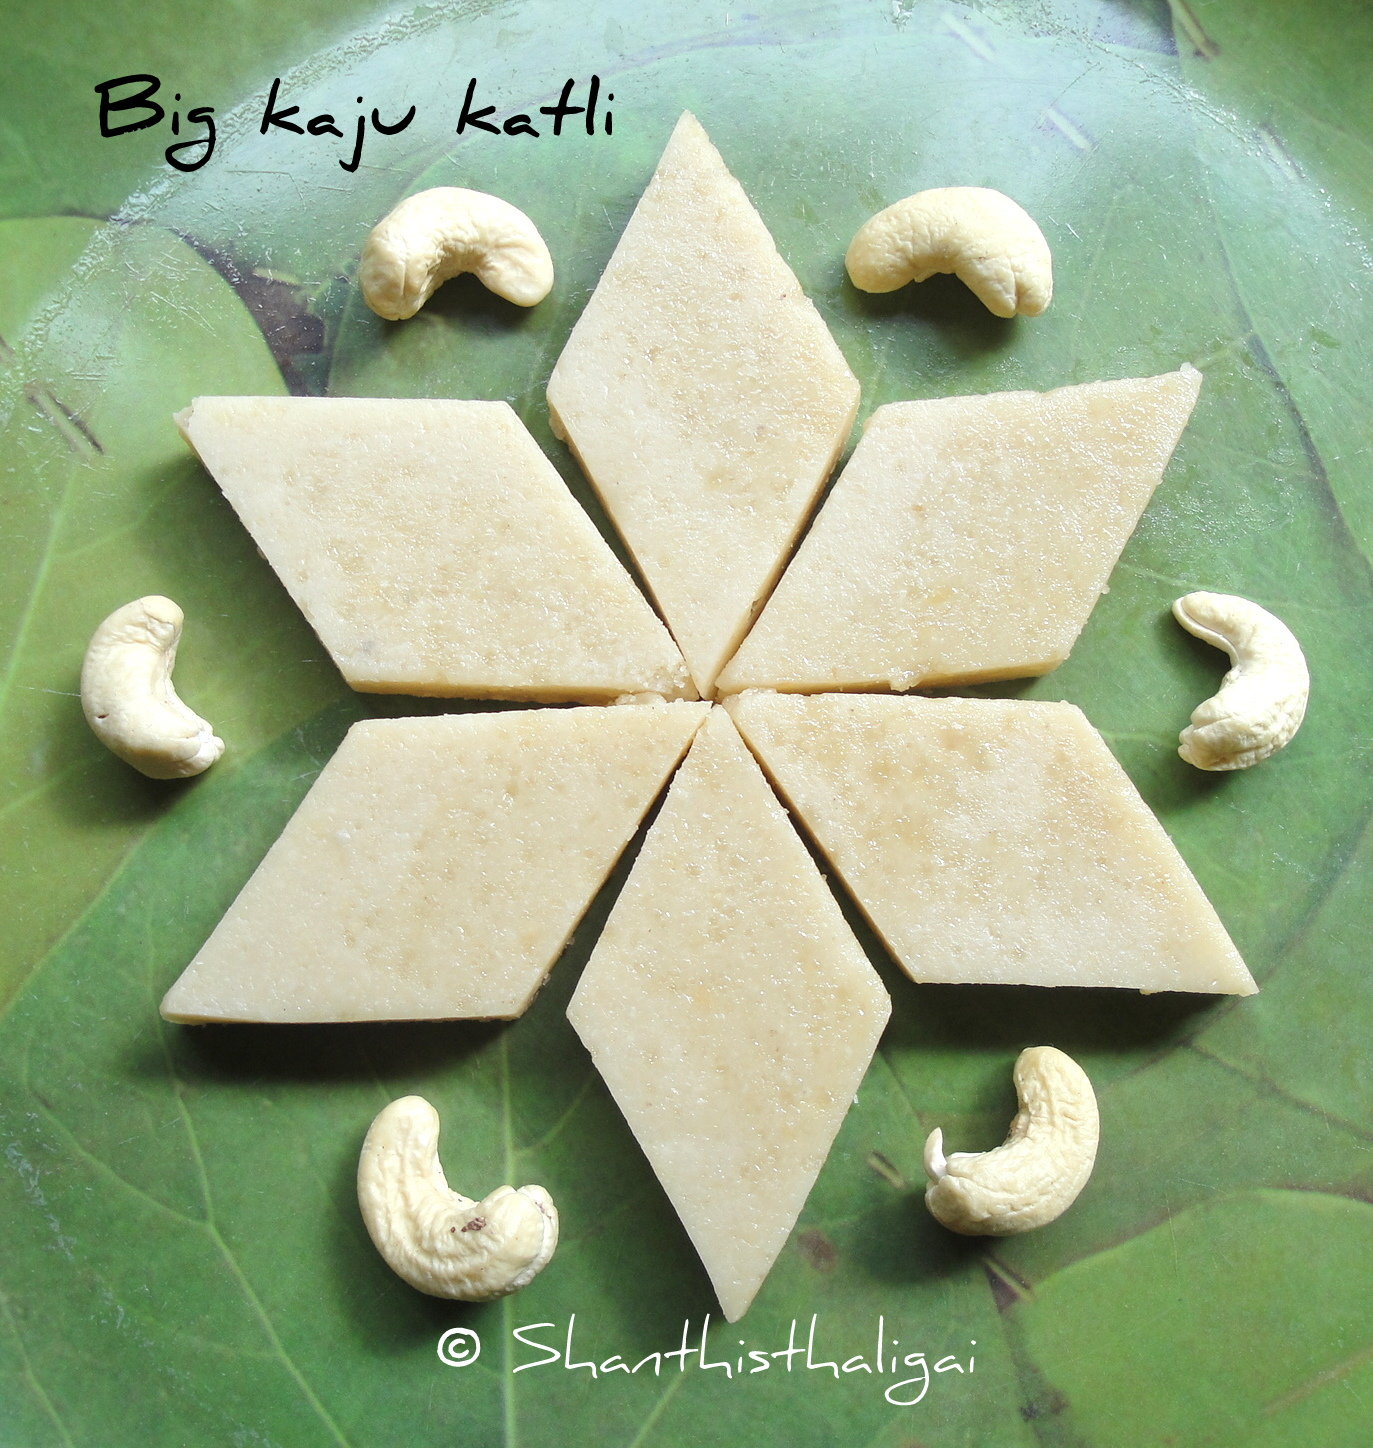 How to make mini kaju katli recipe, How to make kaju katli recipe, How to make small cashew katli recipe